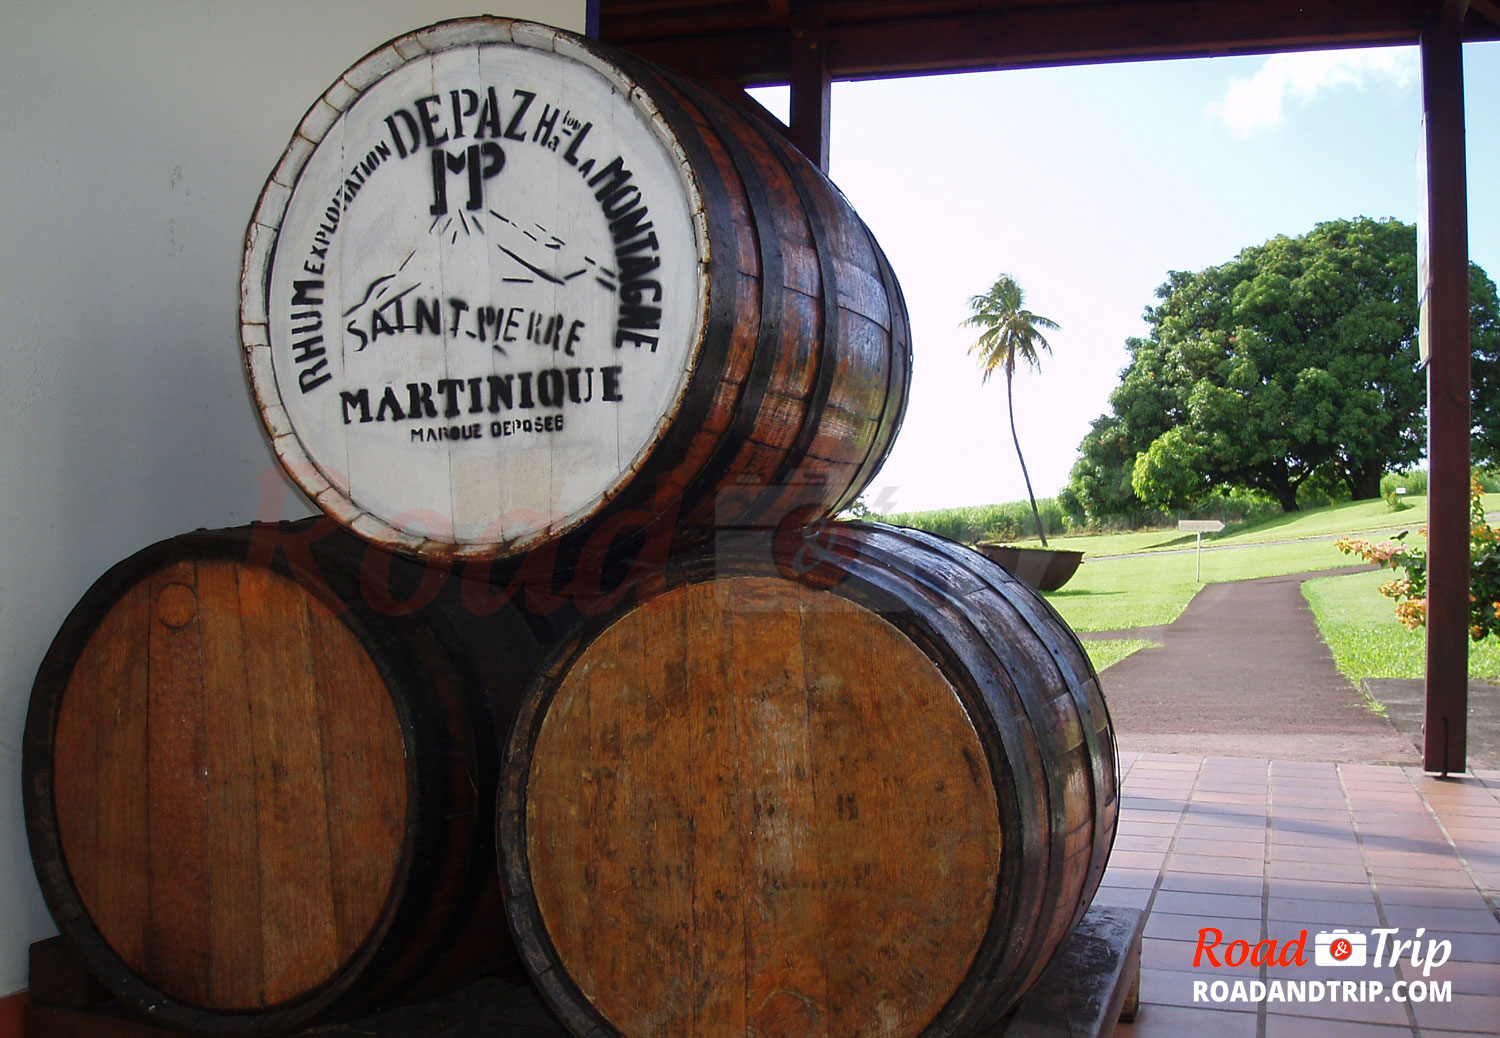 Visiter la Distillerie Depaz en Martinique